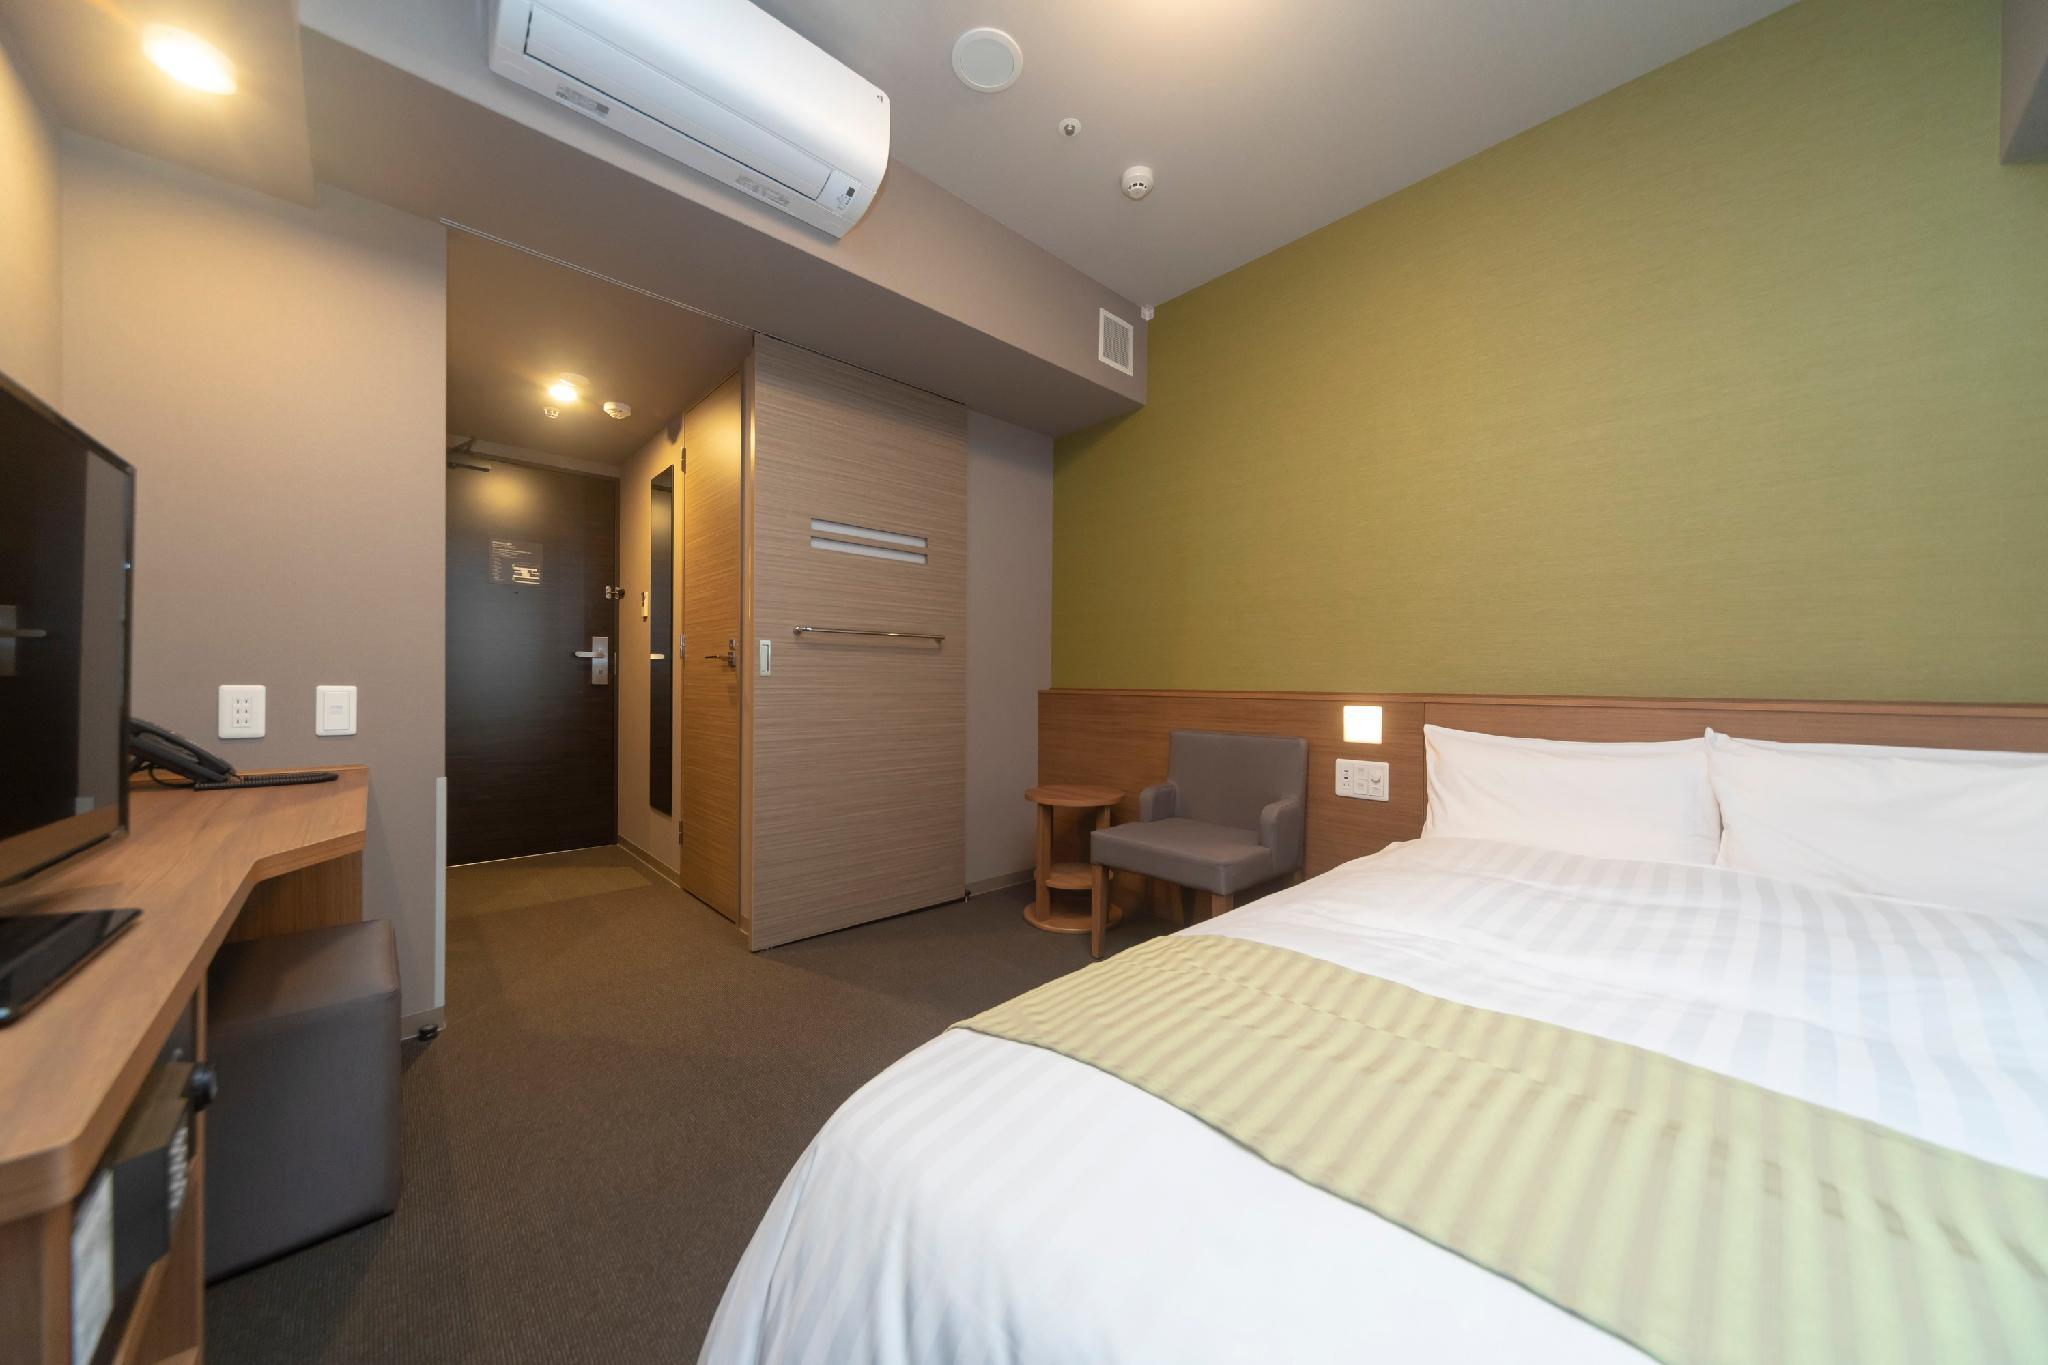 Double Room without Cleaning Service - Non-Smoking